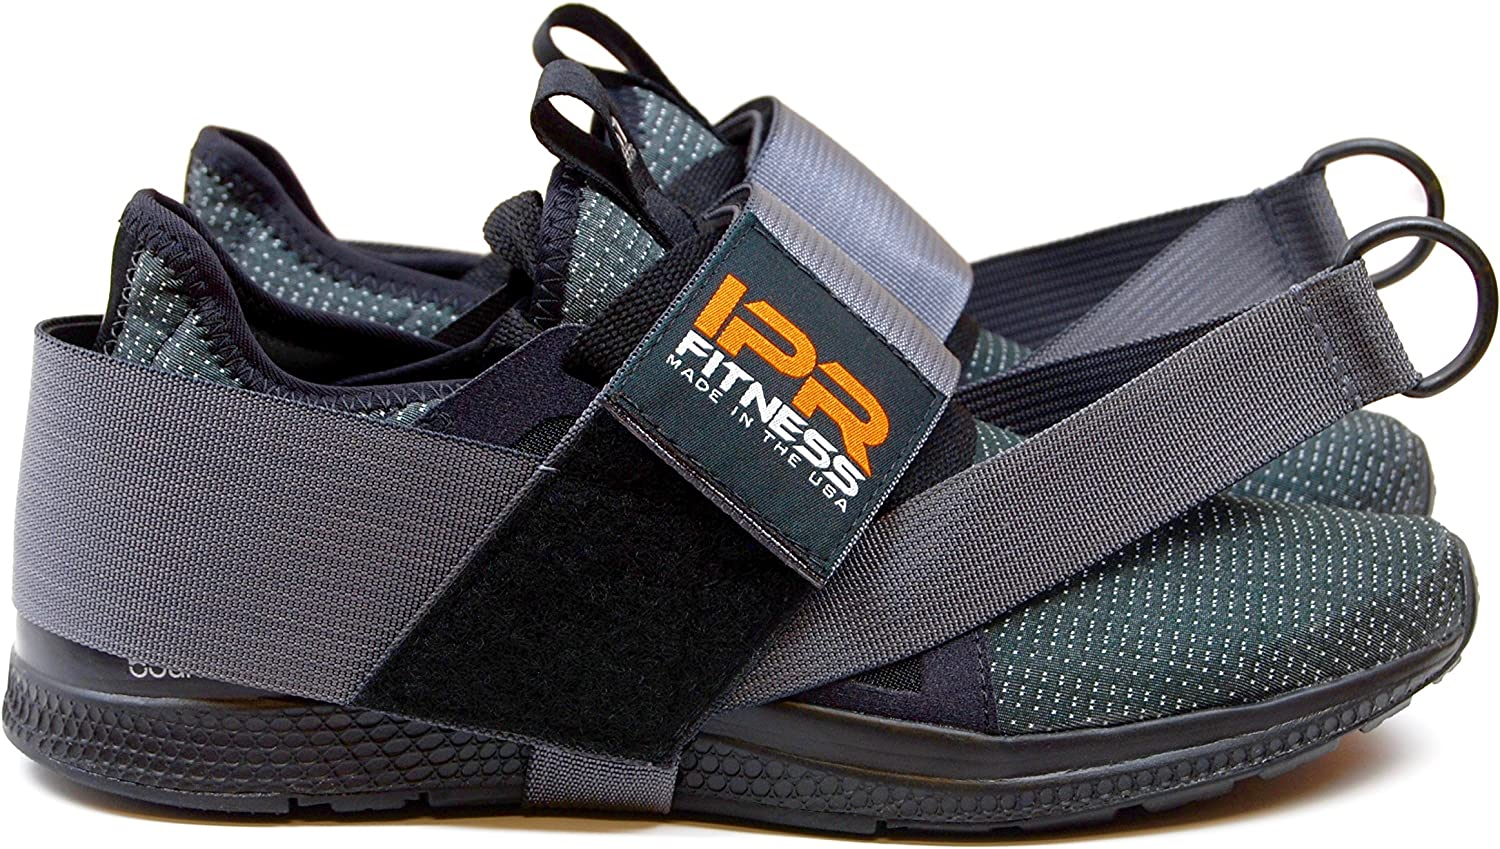 """IPR Fitness Glute Kickback PRO /""""Patented/"""" 100/% Made in The USA I Cable Machine Ankle Straps"""